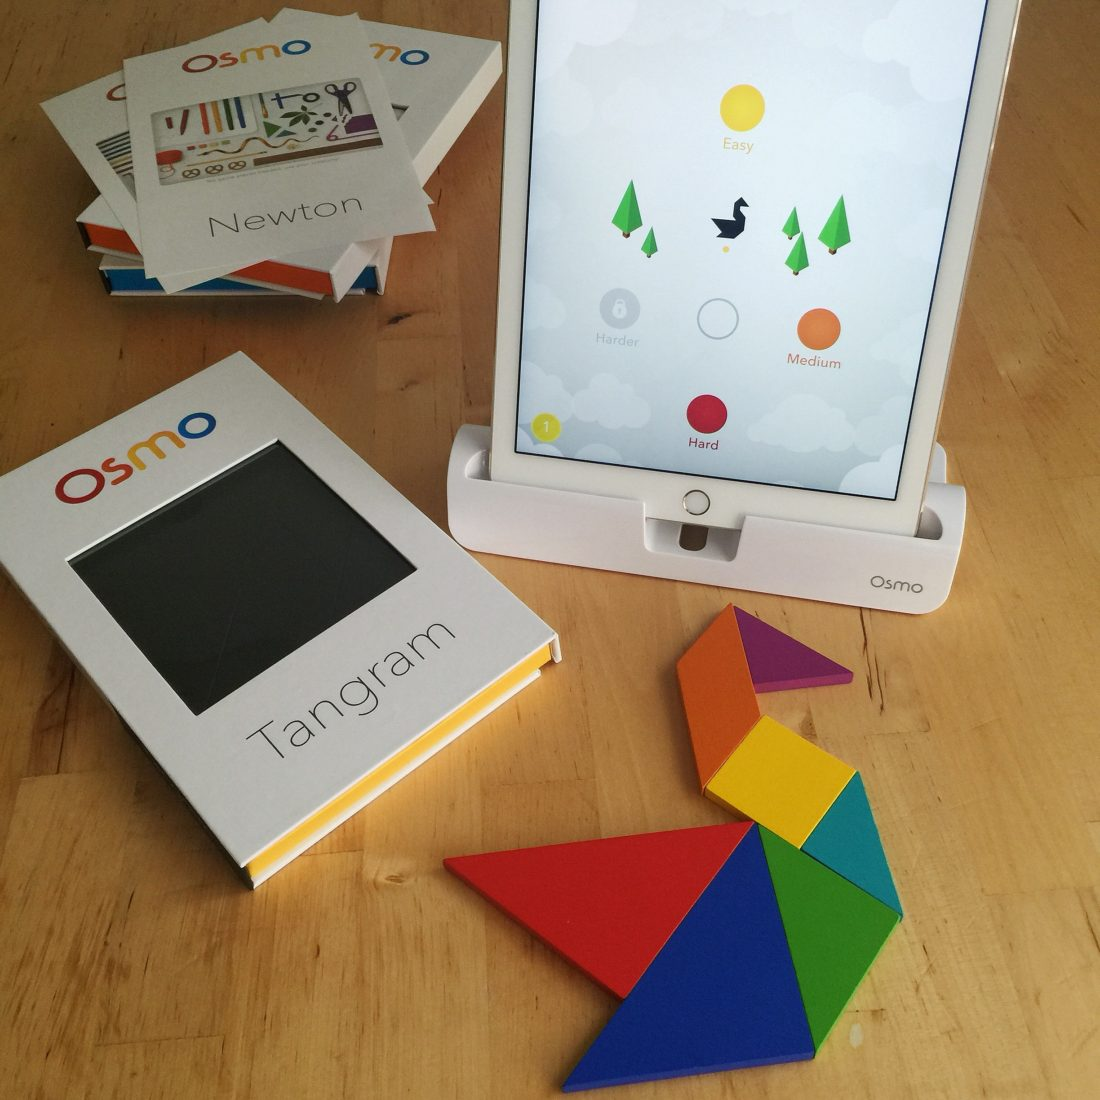 Osmo Tech Toys Bring Fun For the Whole Family © www.roastedbeanz.com #TechToys [AD]